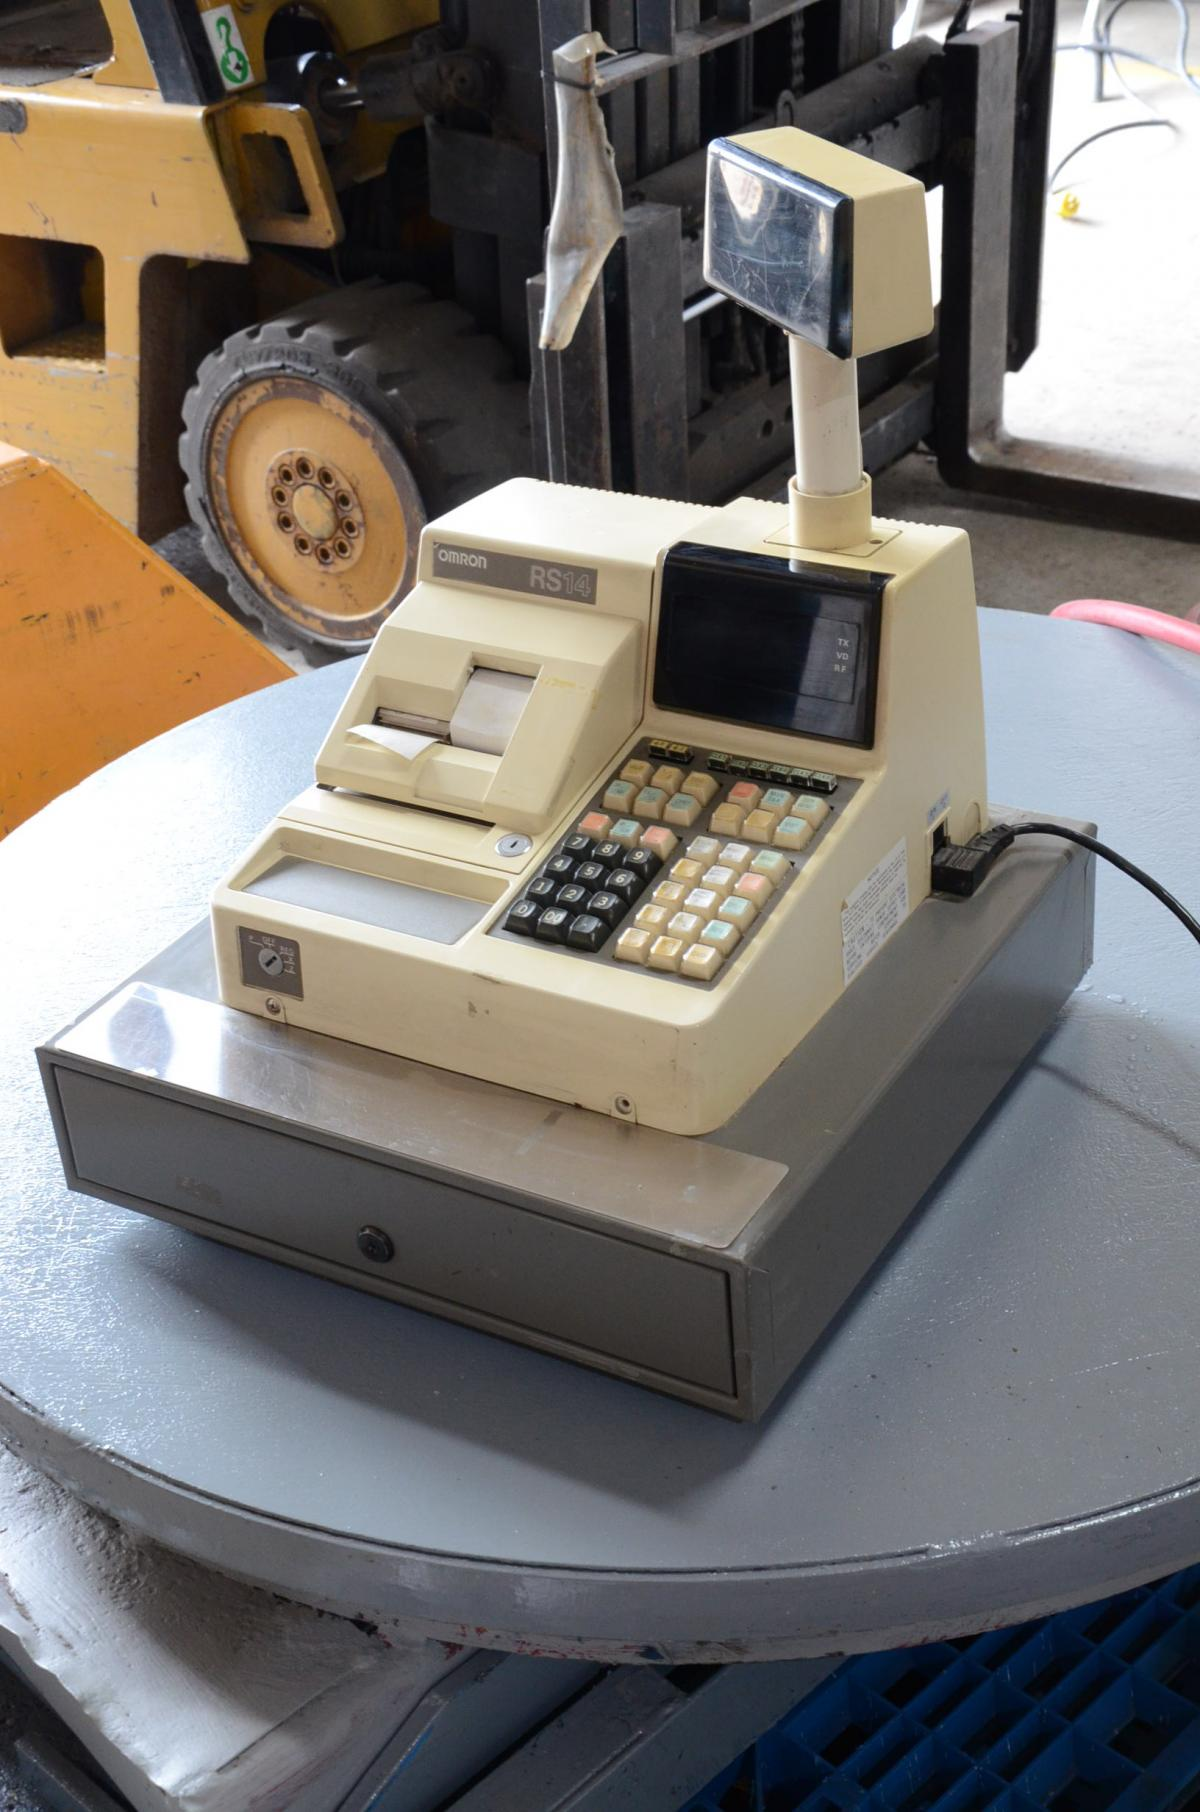 Omron R514 Cash Register Steep Hill Equipment Solutions